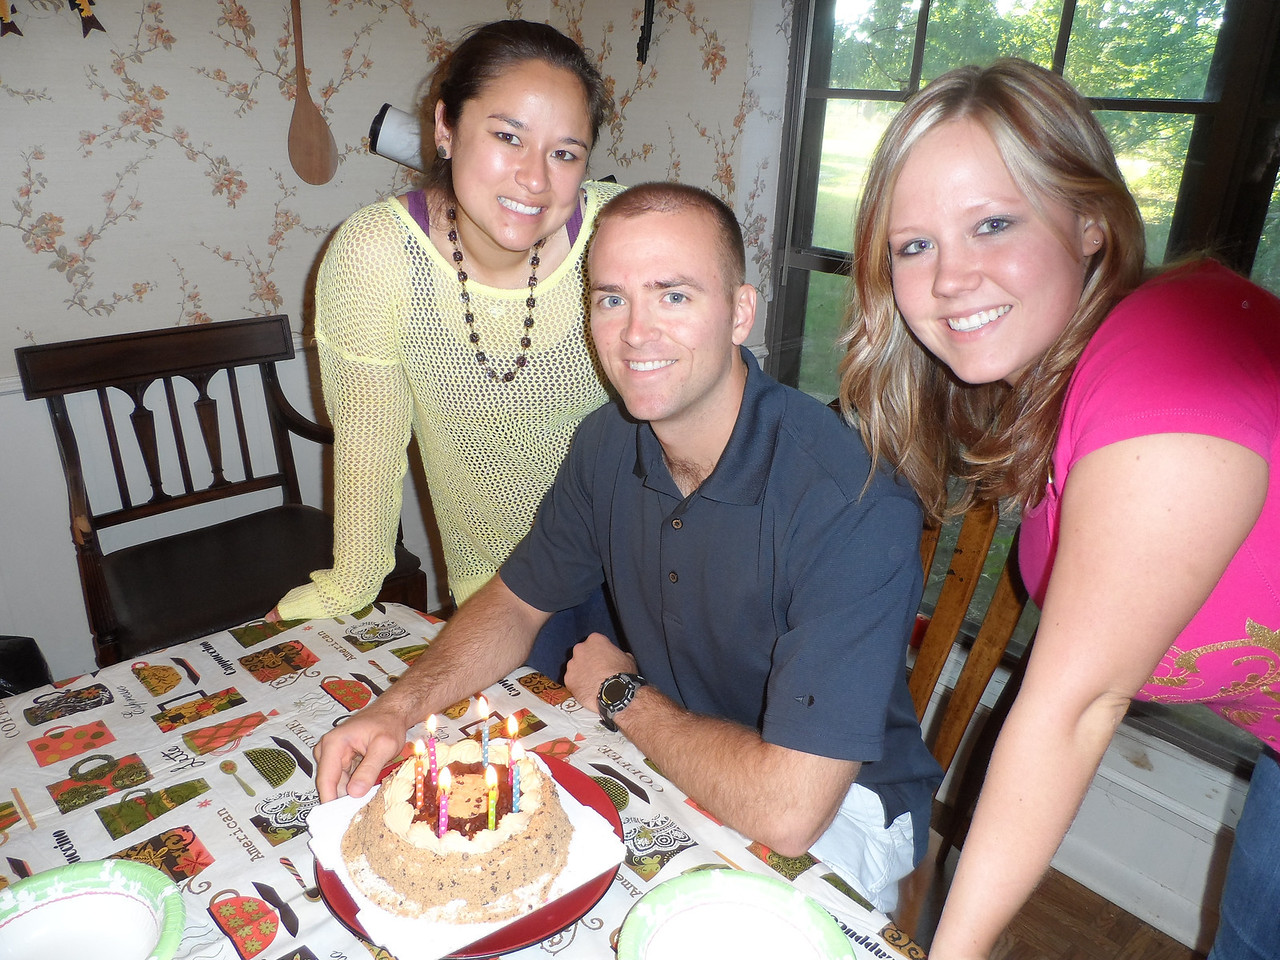 Tiffany, Luke, and Katie.  Luke ready to blow out his candles!